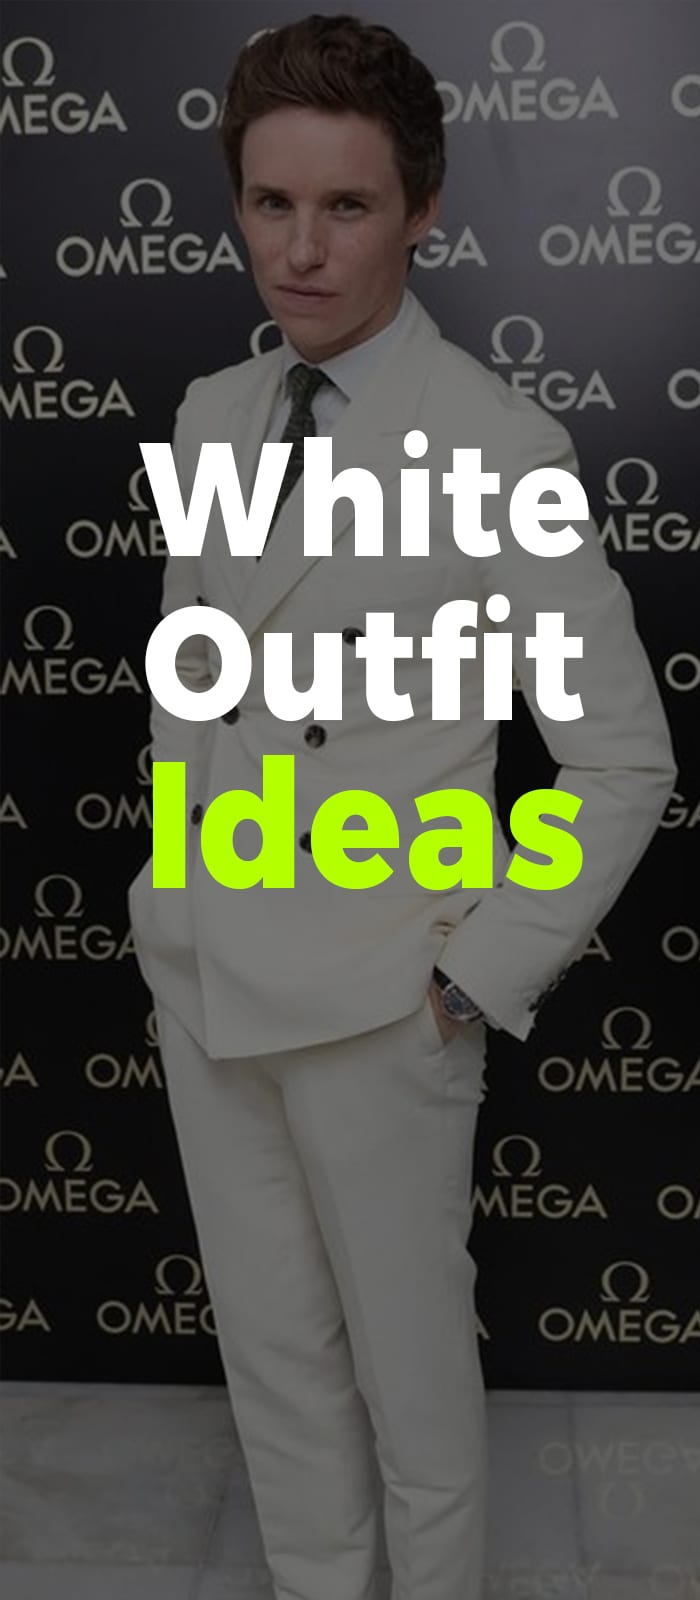 Full white suit with black tie and loafers for men